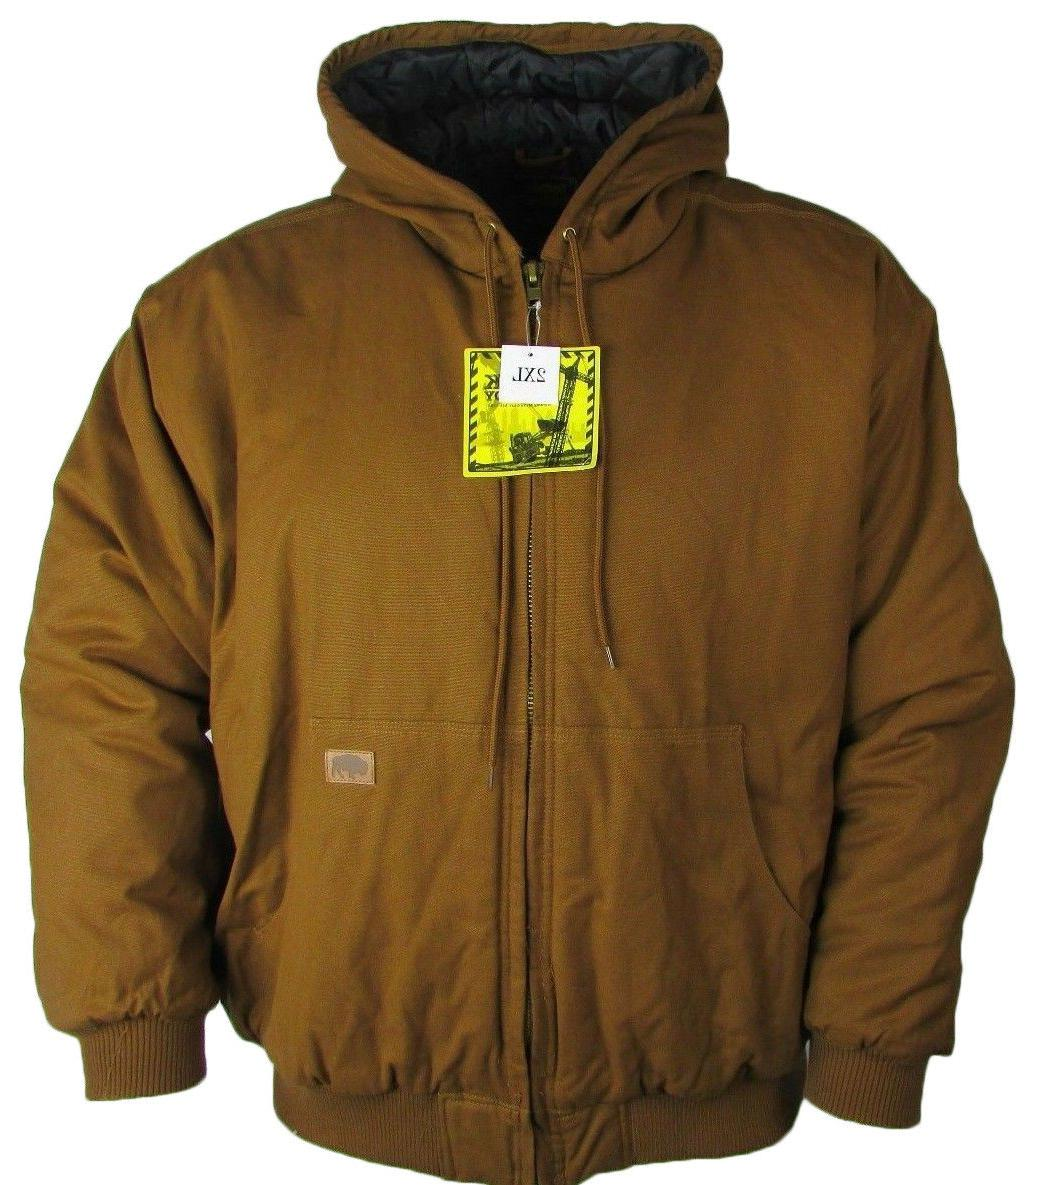 Buffalo Outdoors Men's Hooded Brown Canvas Work Jacket Style